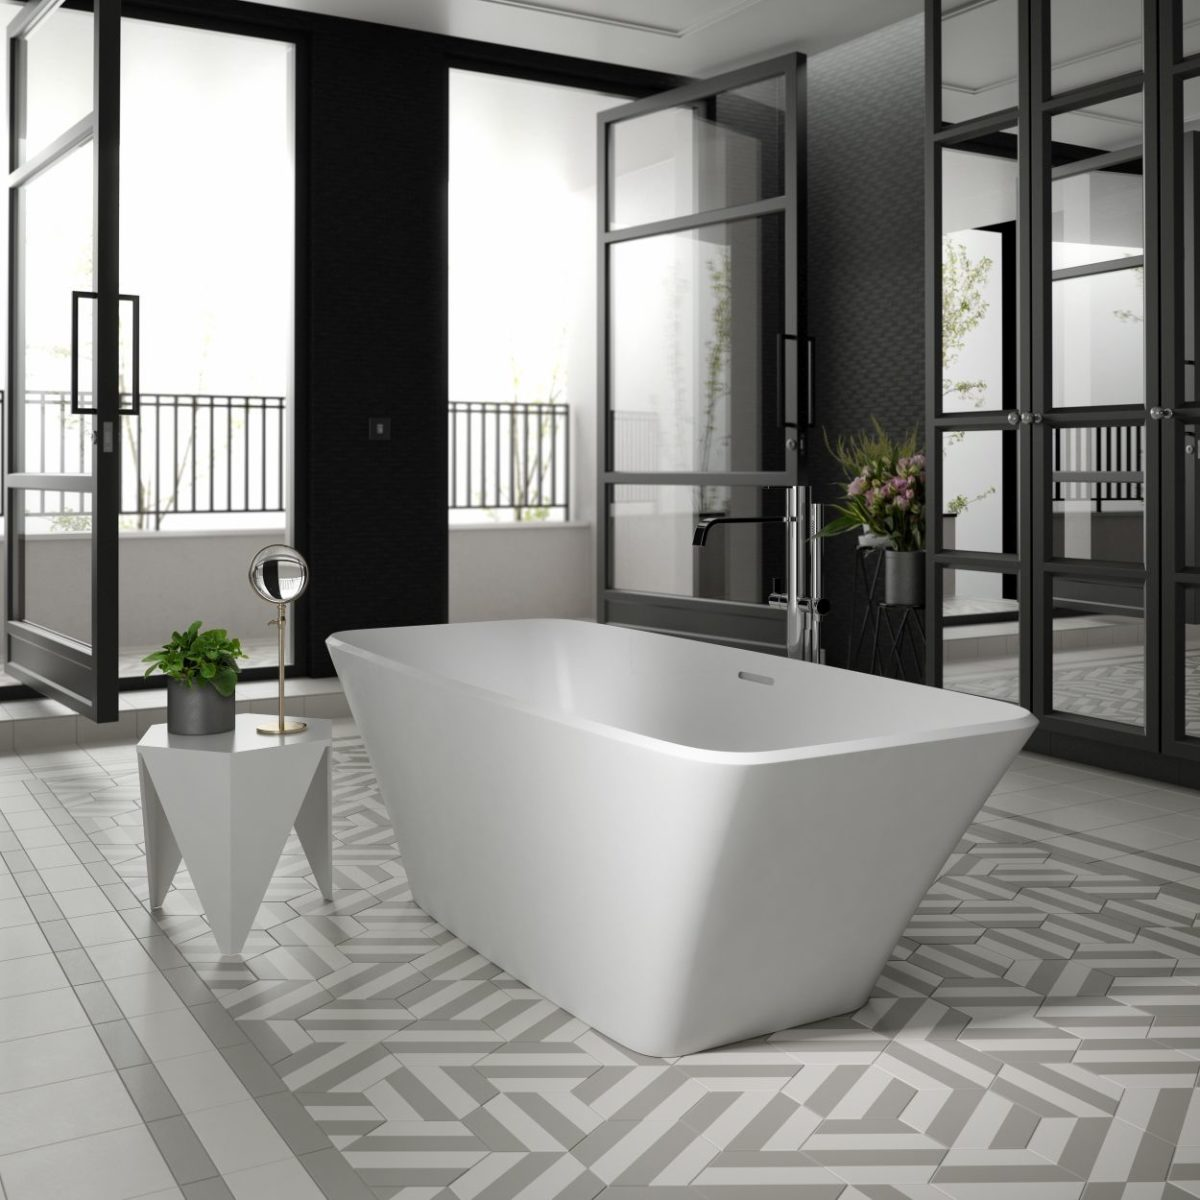 13the-pure-bathroom-collection-from-smiths-briten_anglesey-bath-1200x1200.jpg